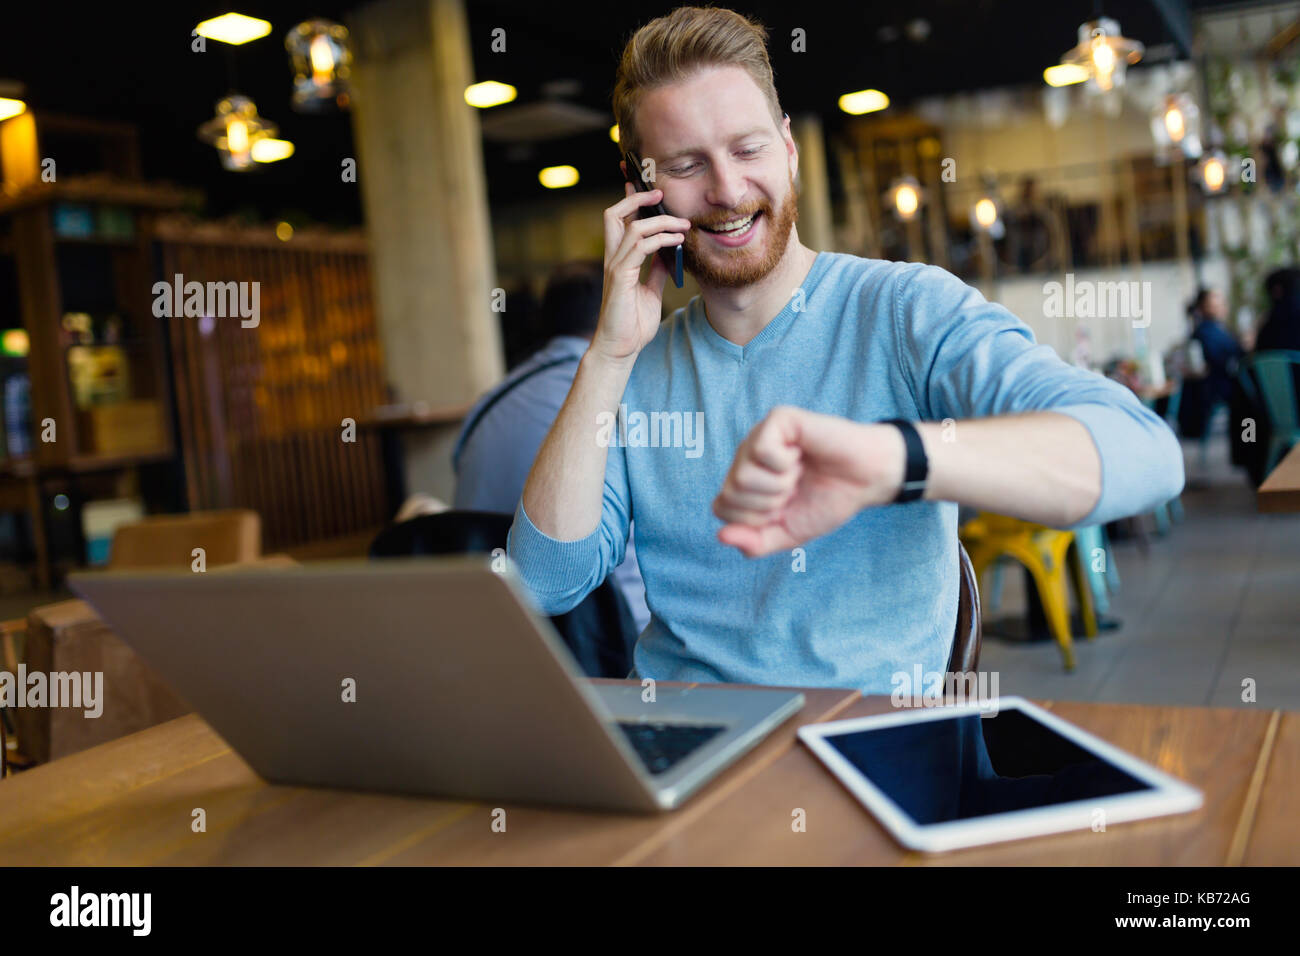 Young man having phone call in coffee shop - Stock Image